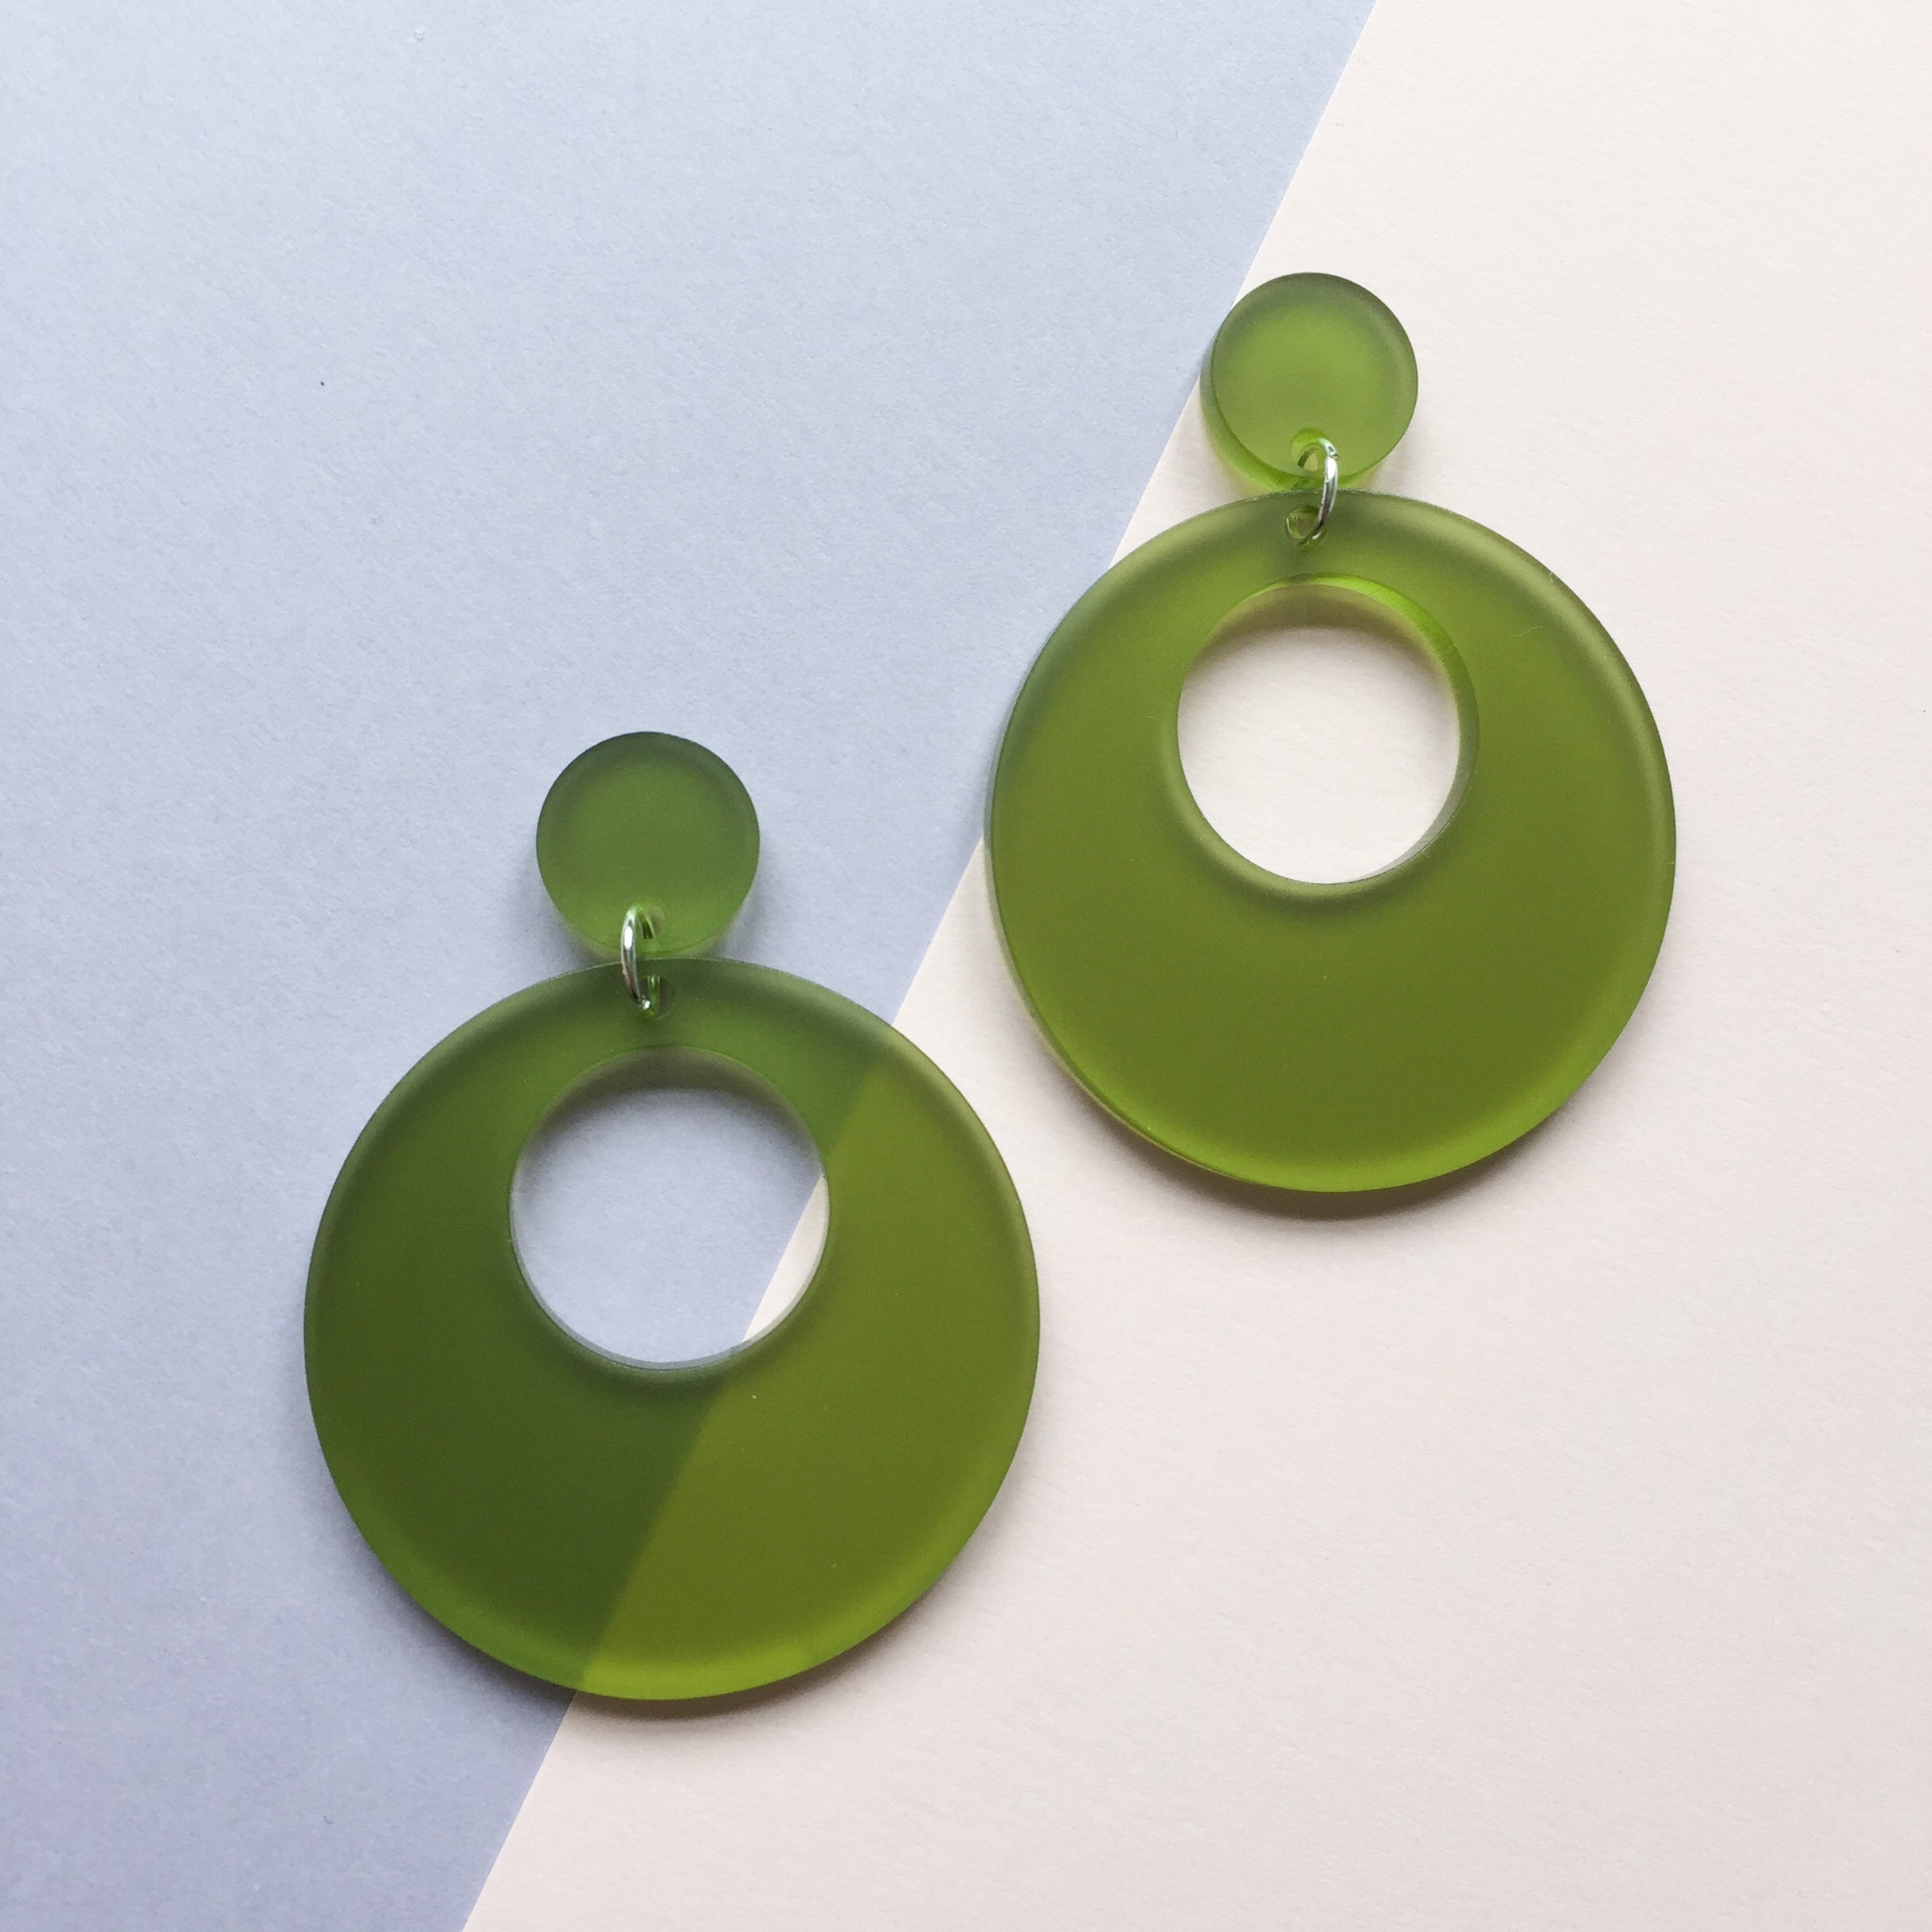 Mod Inspired Stud Hoop Earrings - Frosted Green